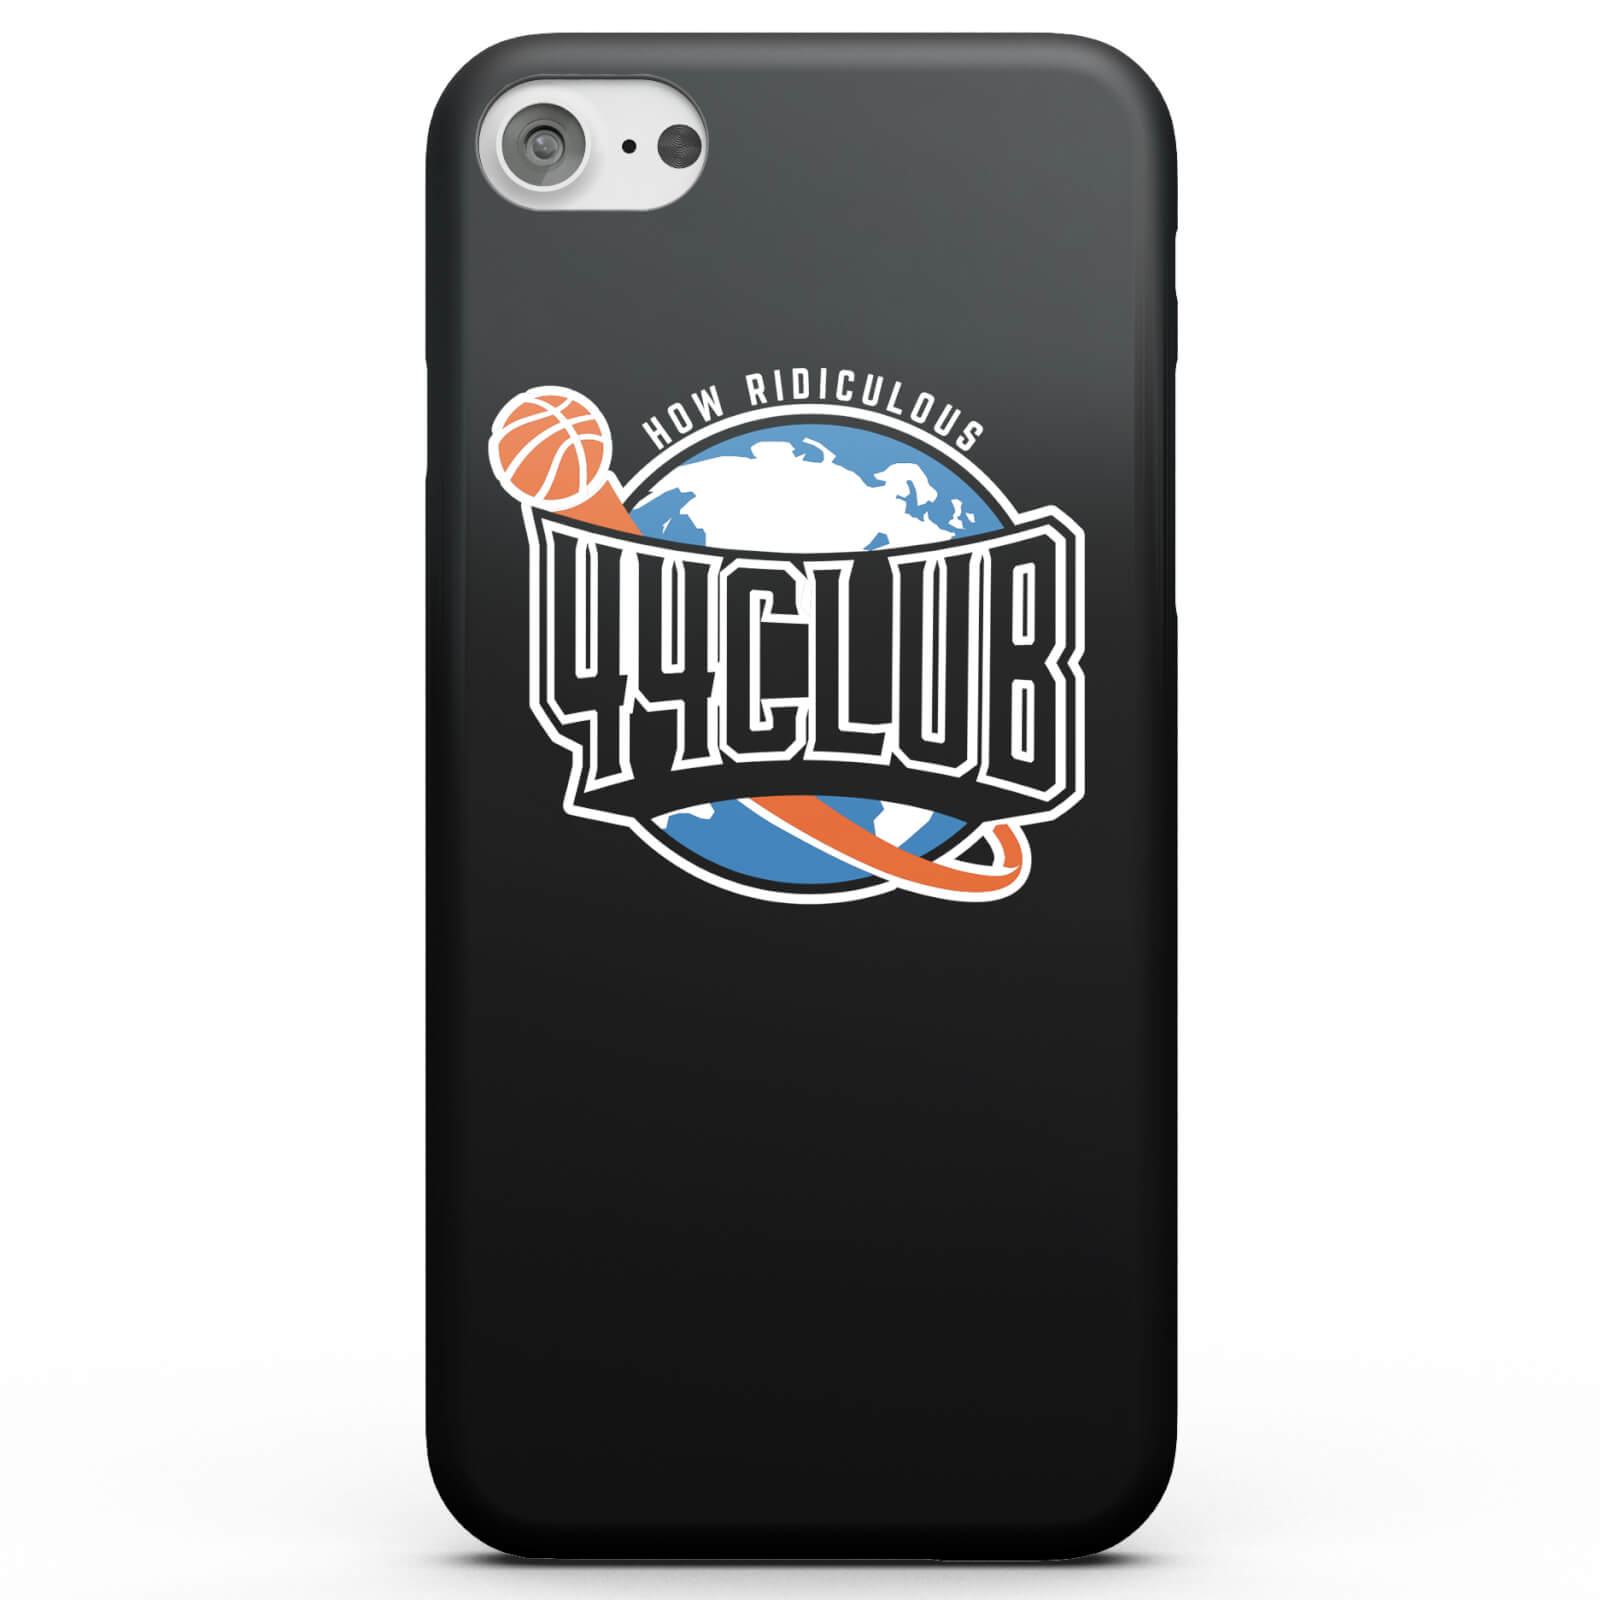 How Ridiculous 44 Club Basketball Phone Case - Black